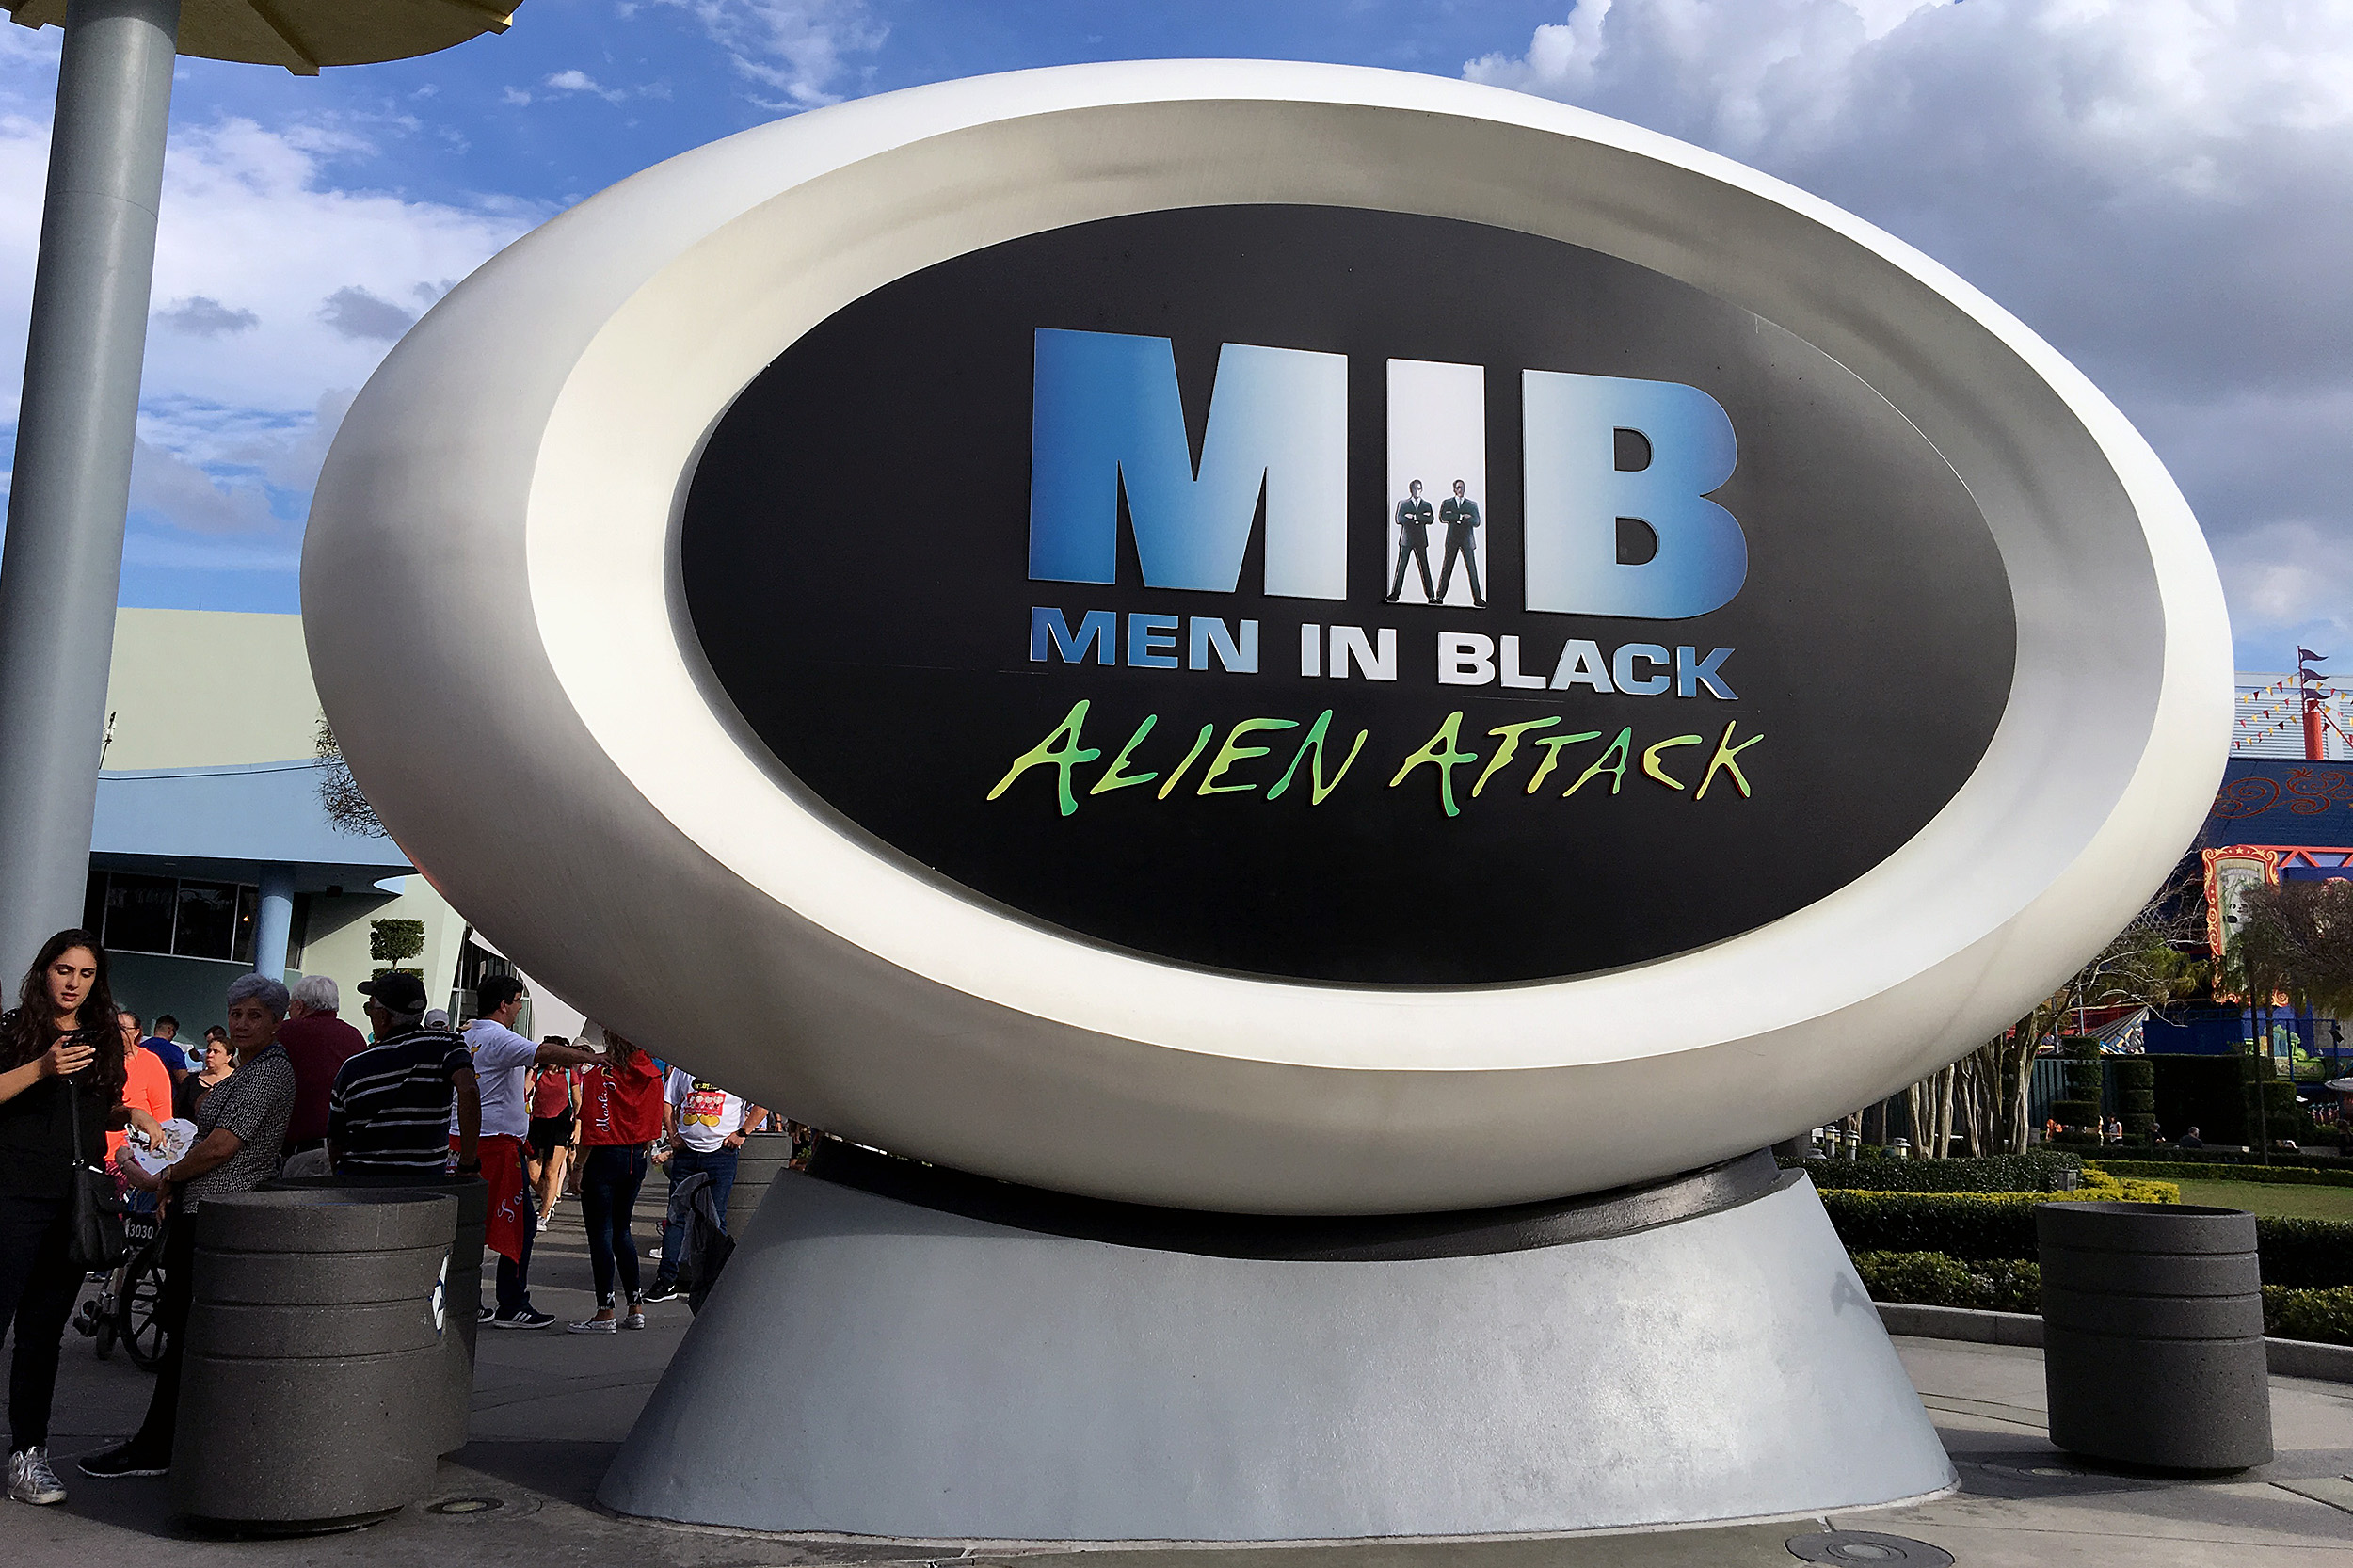 MEN IN BLACK Alien Attack Universal studios Florida